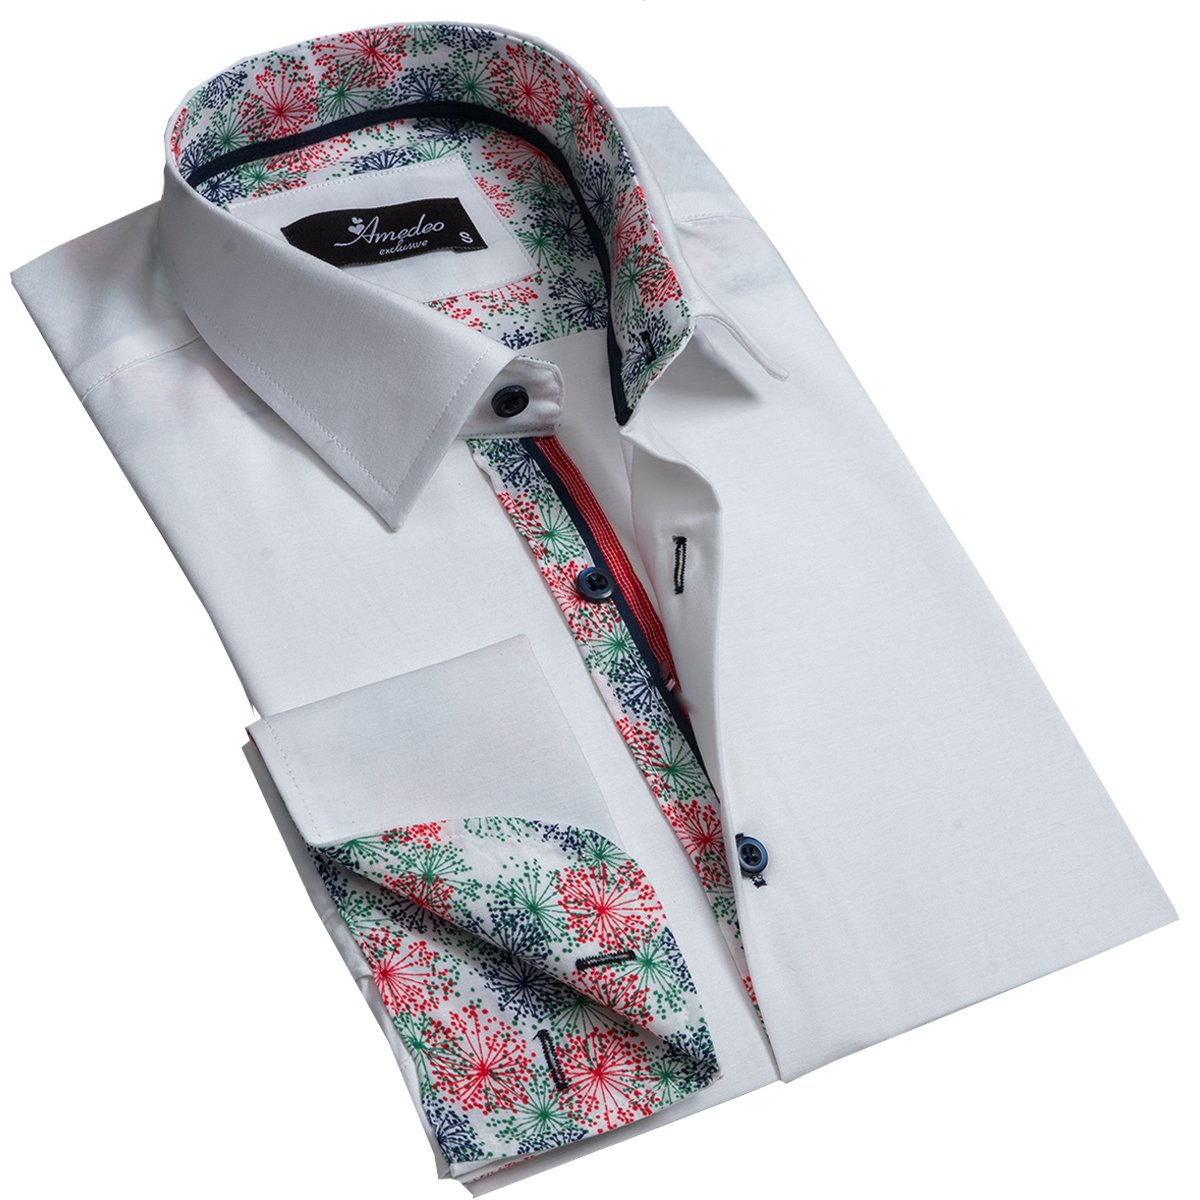 Solid White Mens Slim Fit Designer Dress Shirt - tailored Cotton Shirts for Work and Casual Wear - Amedeo Exclusive